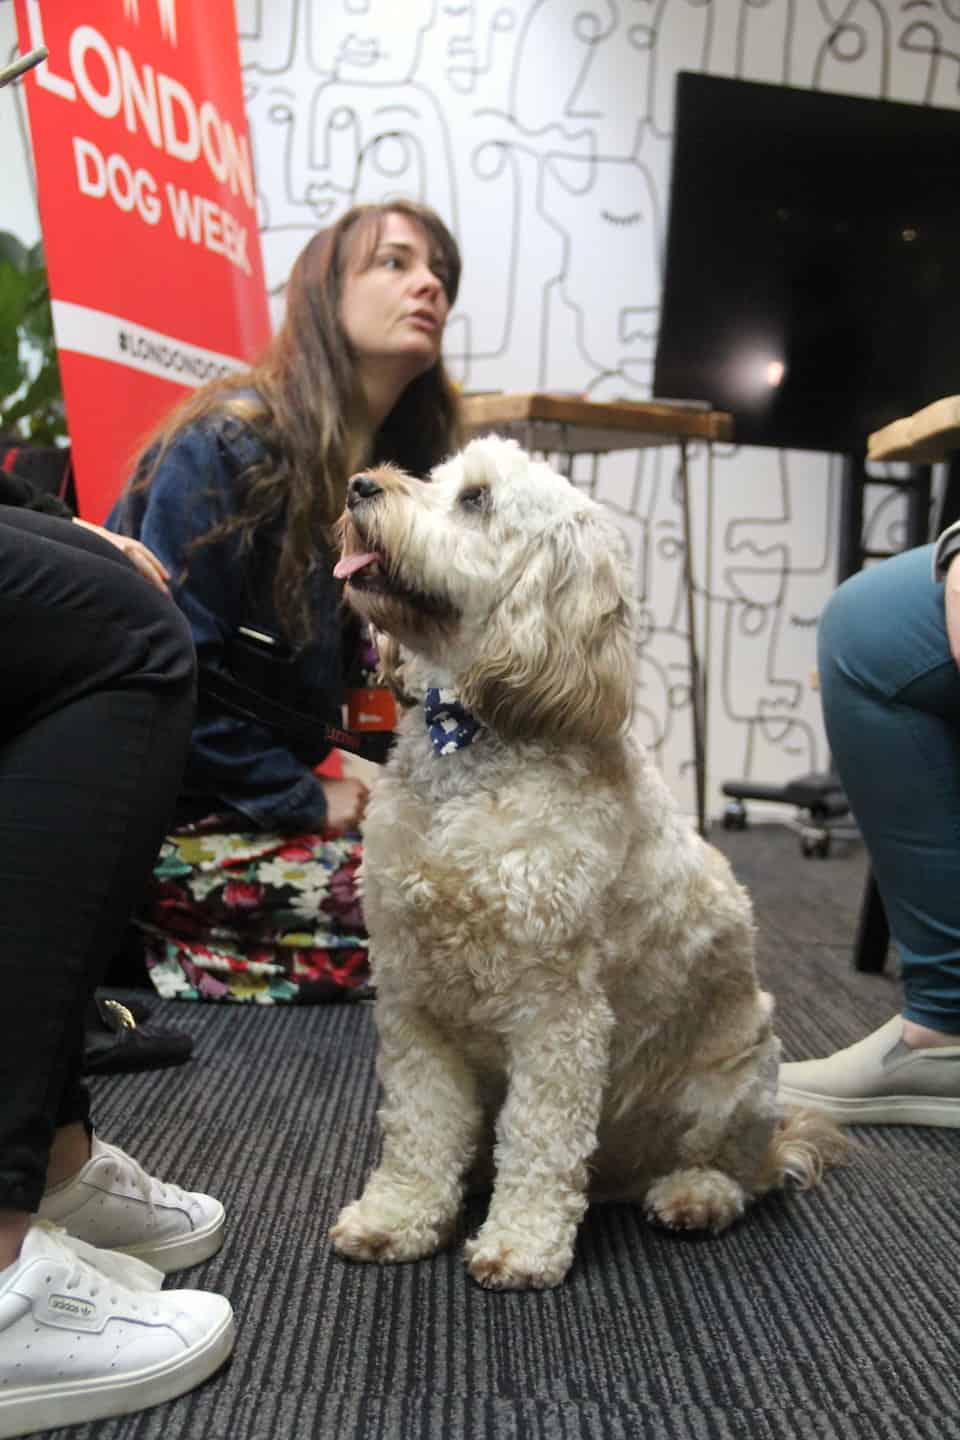 Are Dog-friendly Offices are good for you-Perkbox Dogs at Work-Reggie at London Dog Week